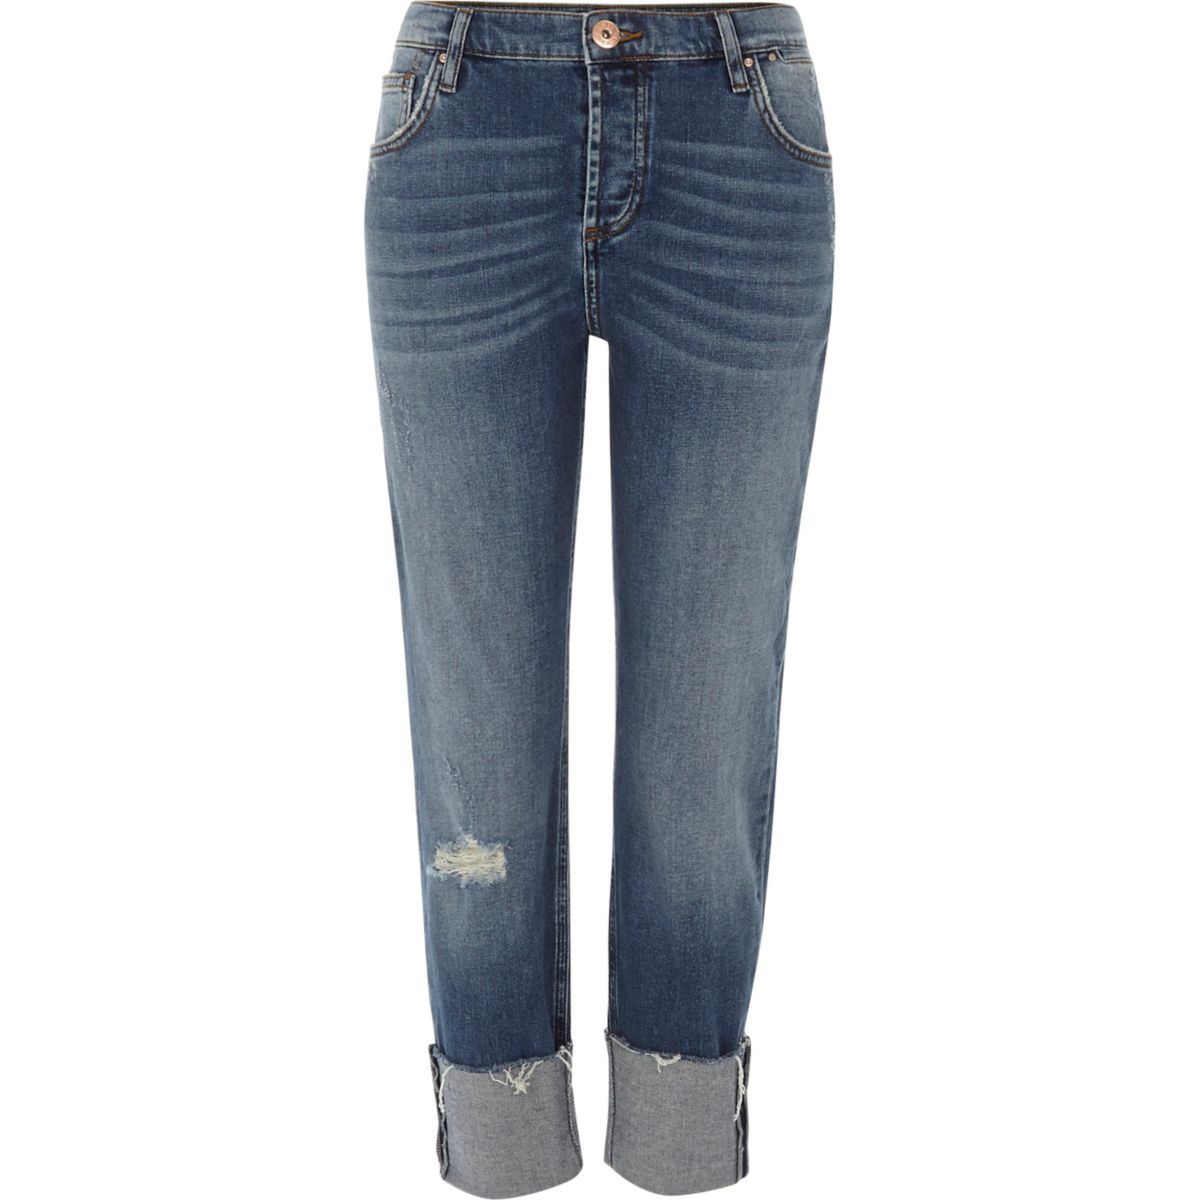 Levi's® women's sale jeans are a modern twist on classic styles that have defined generations. Shop boyfriend jeans women's sale at Levi's® US for the best selection.